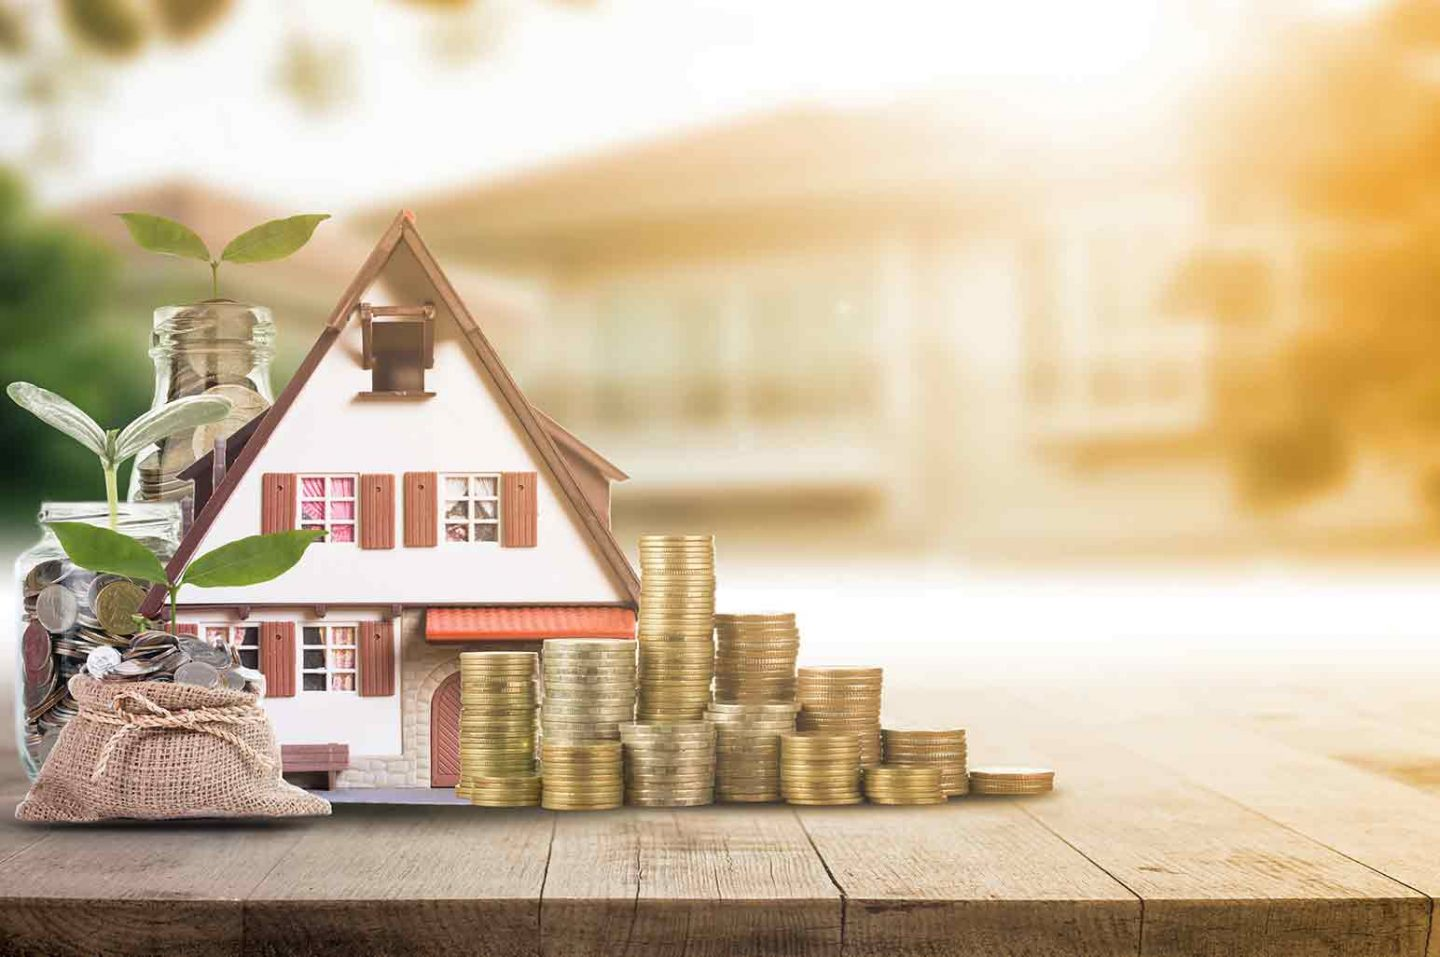 Things To Consider Before Taking Out A Home Loan